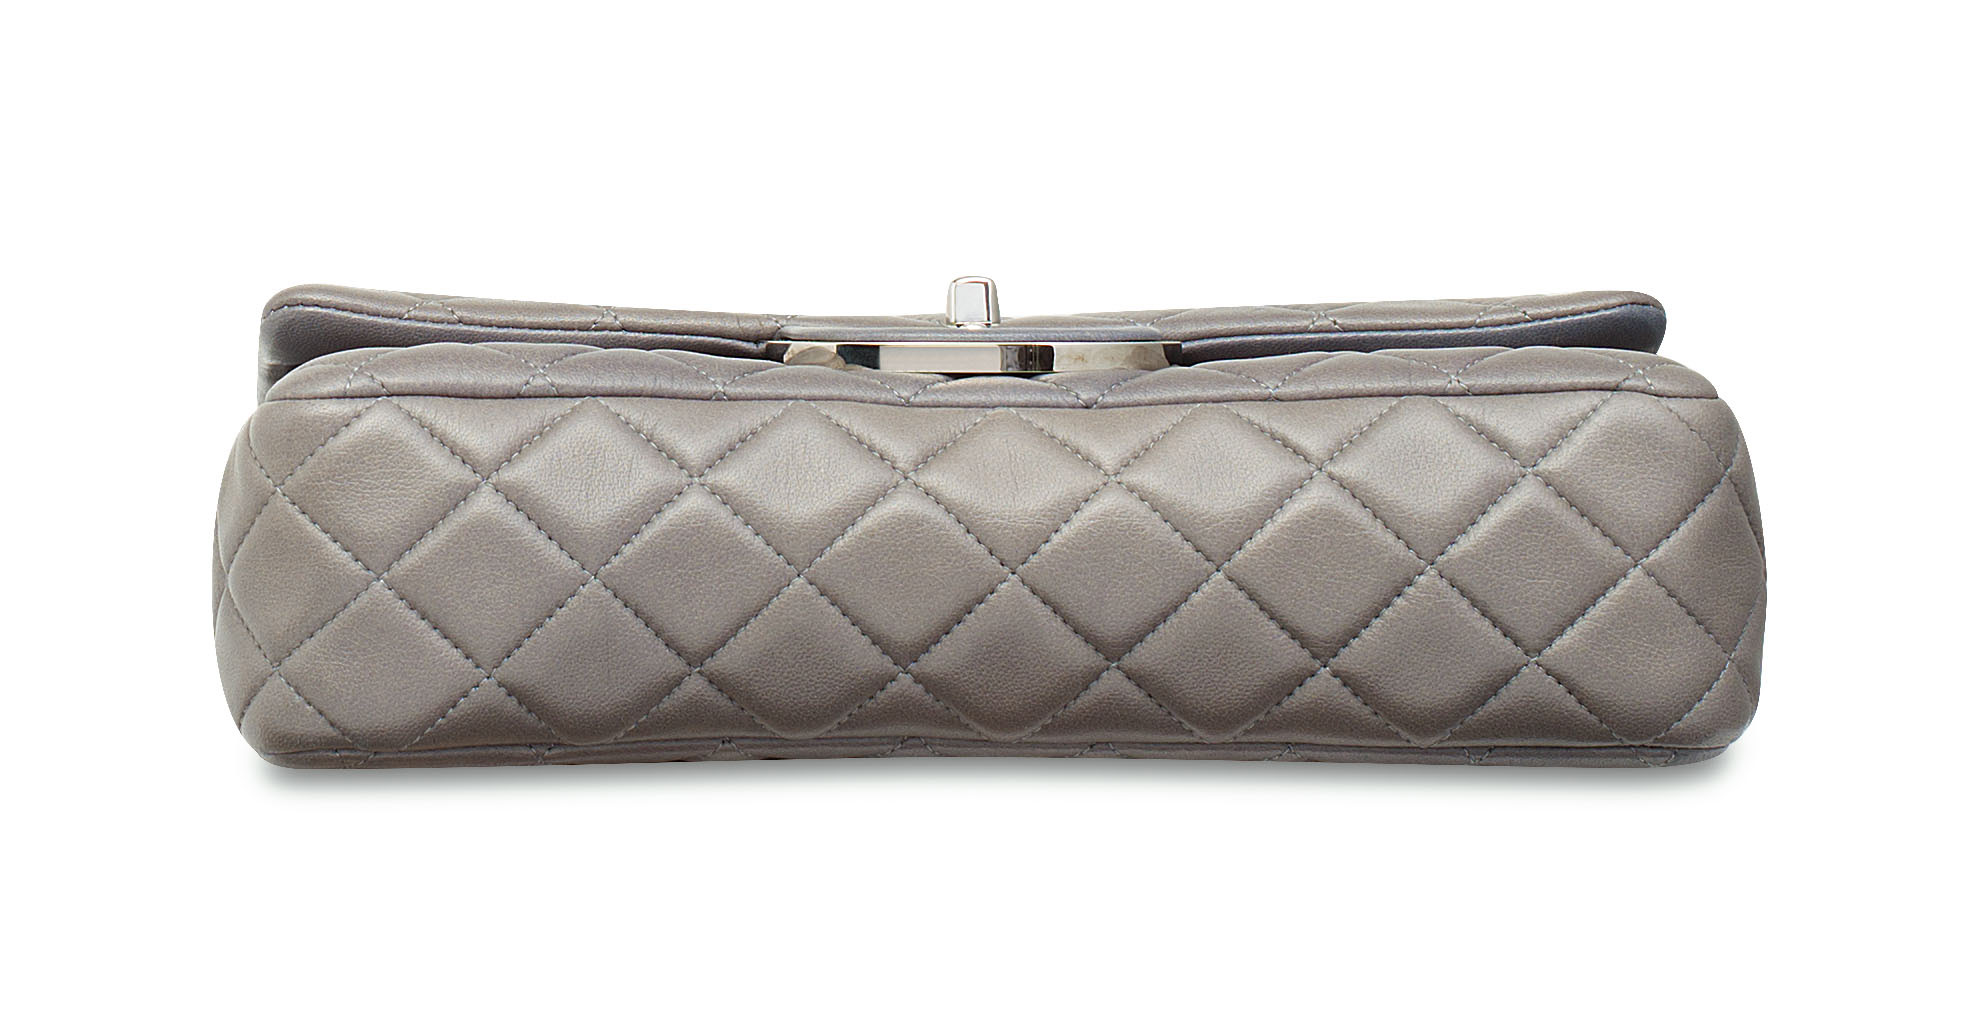 A GREY LAMBSKIN LEATHER DOUBLE